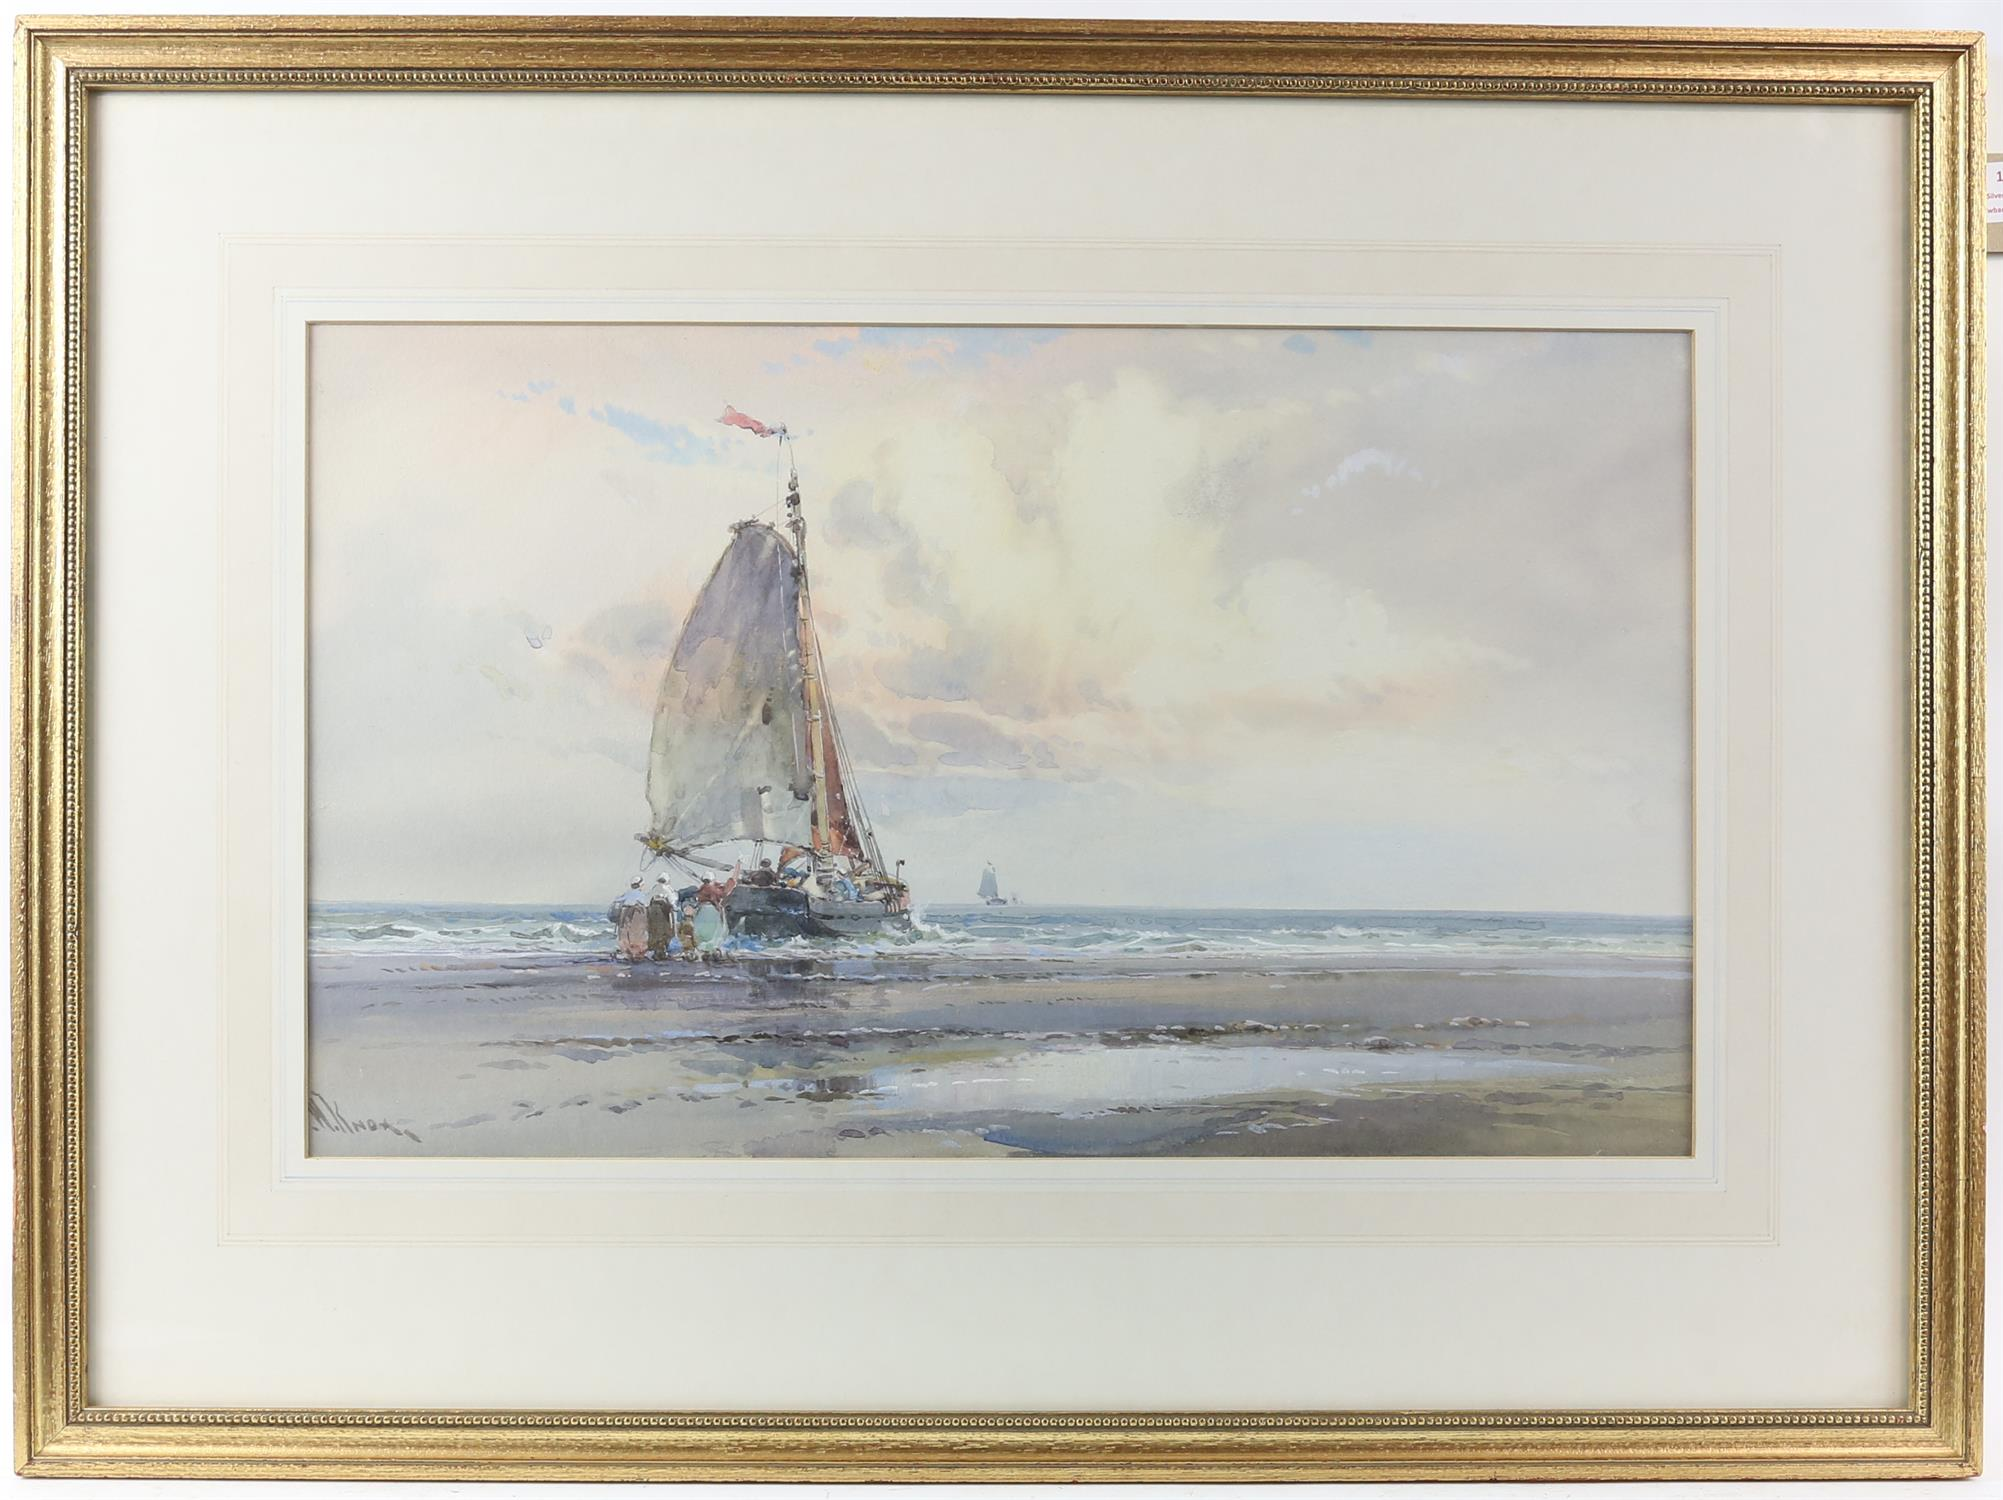 """Wilfred Knox (1884-1966) """"Off Venice"""" watercolour, signed, 29cm x 48cm, """"Dutch fishing boat at - Image 5 of 6"""